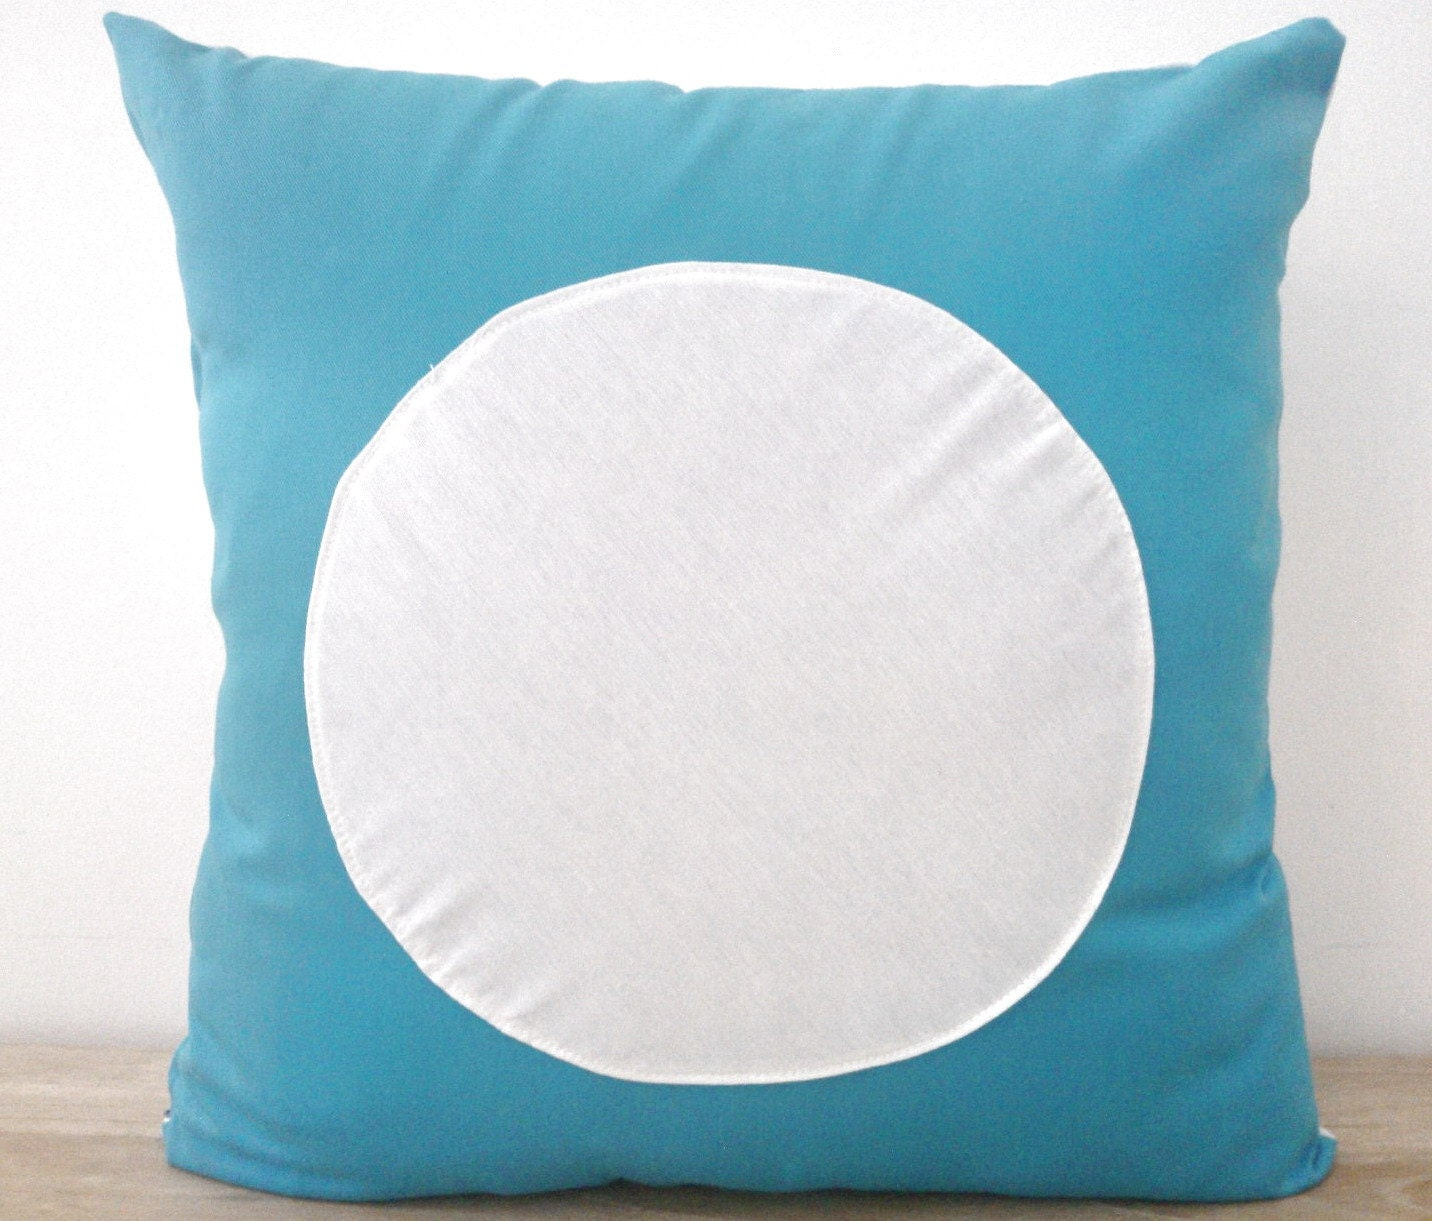 Circle Design Throw Pillows : Throw Pillow, Geometric Modern Home Accent, White Circle on Turquoise Design